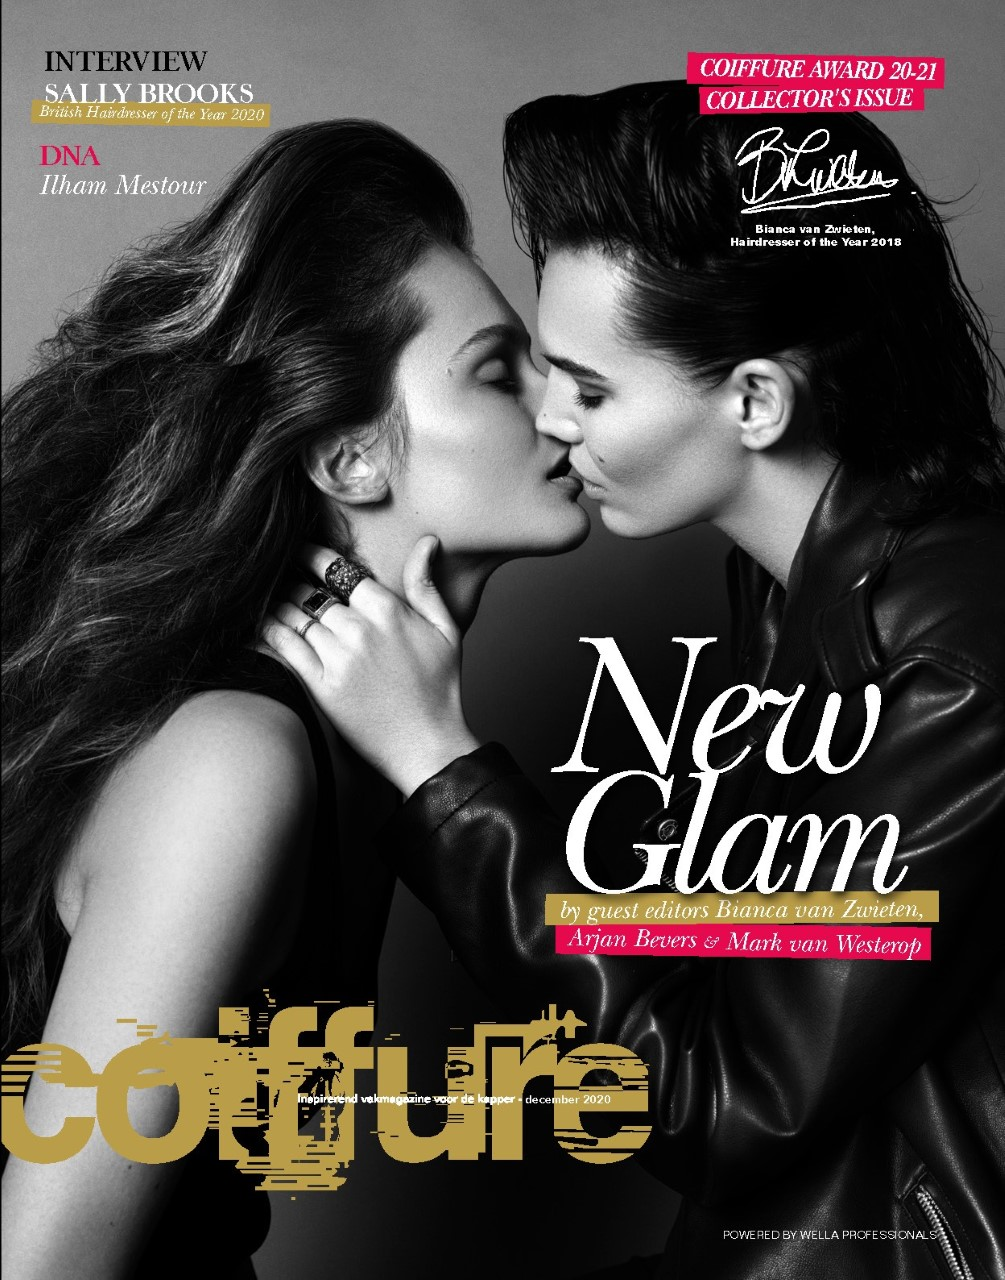 COIFFURE dec 2020: New Glam